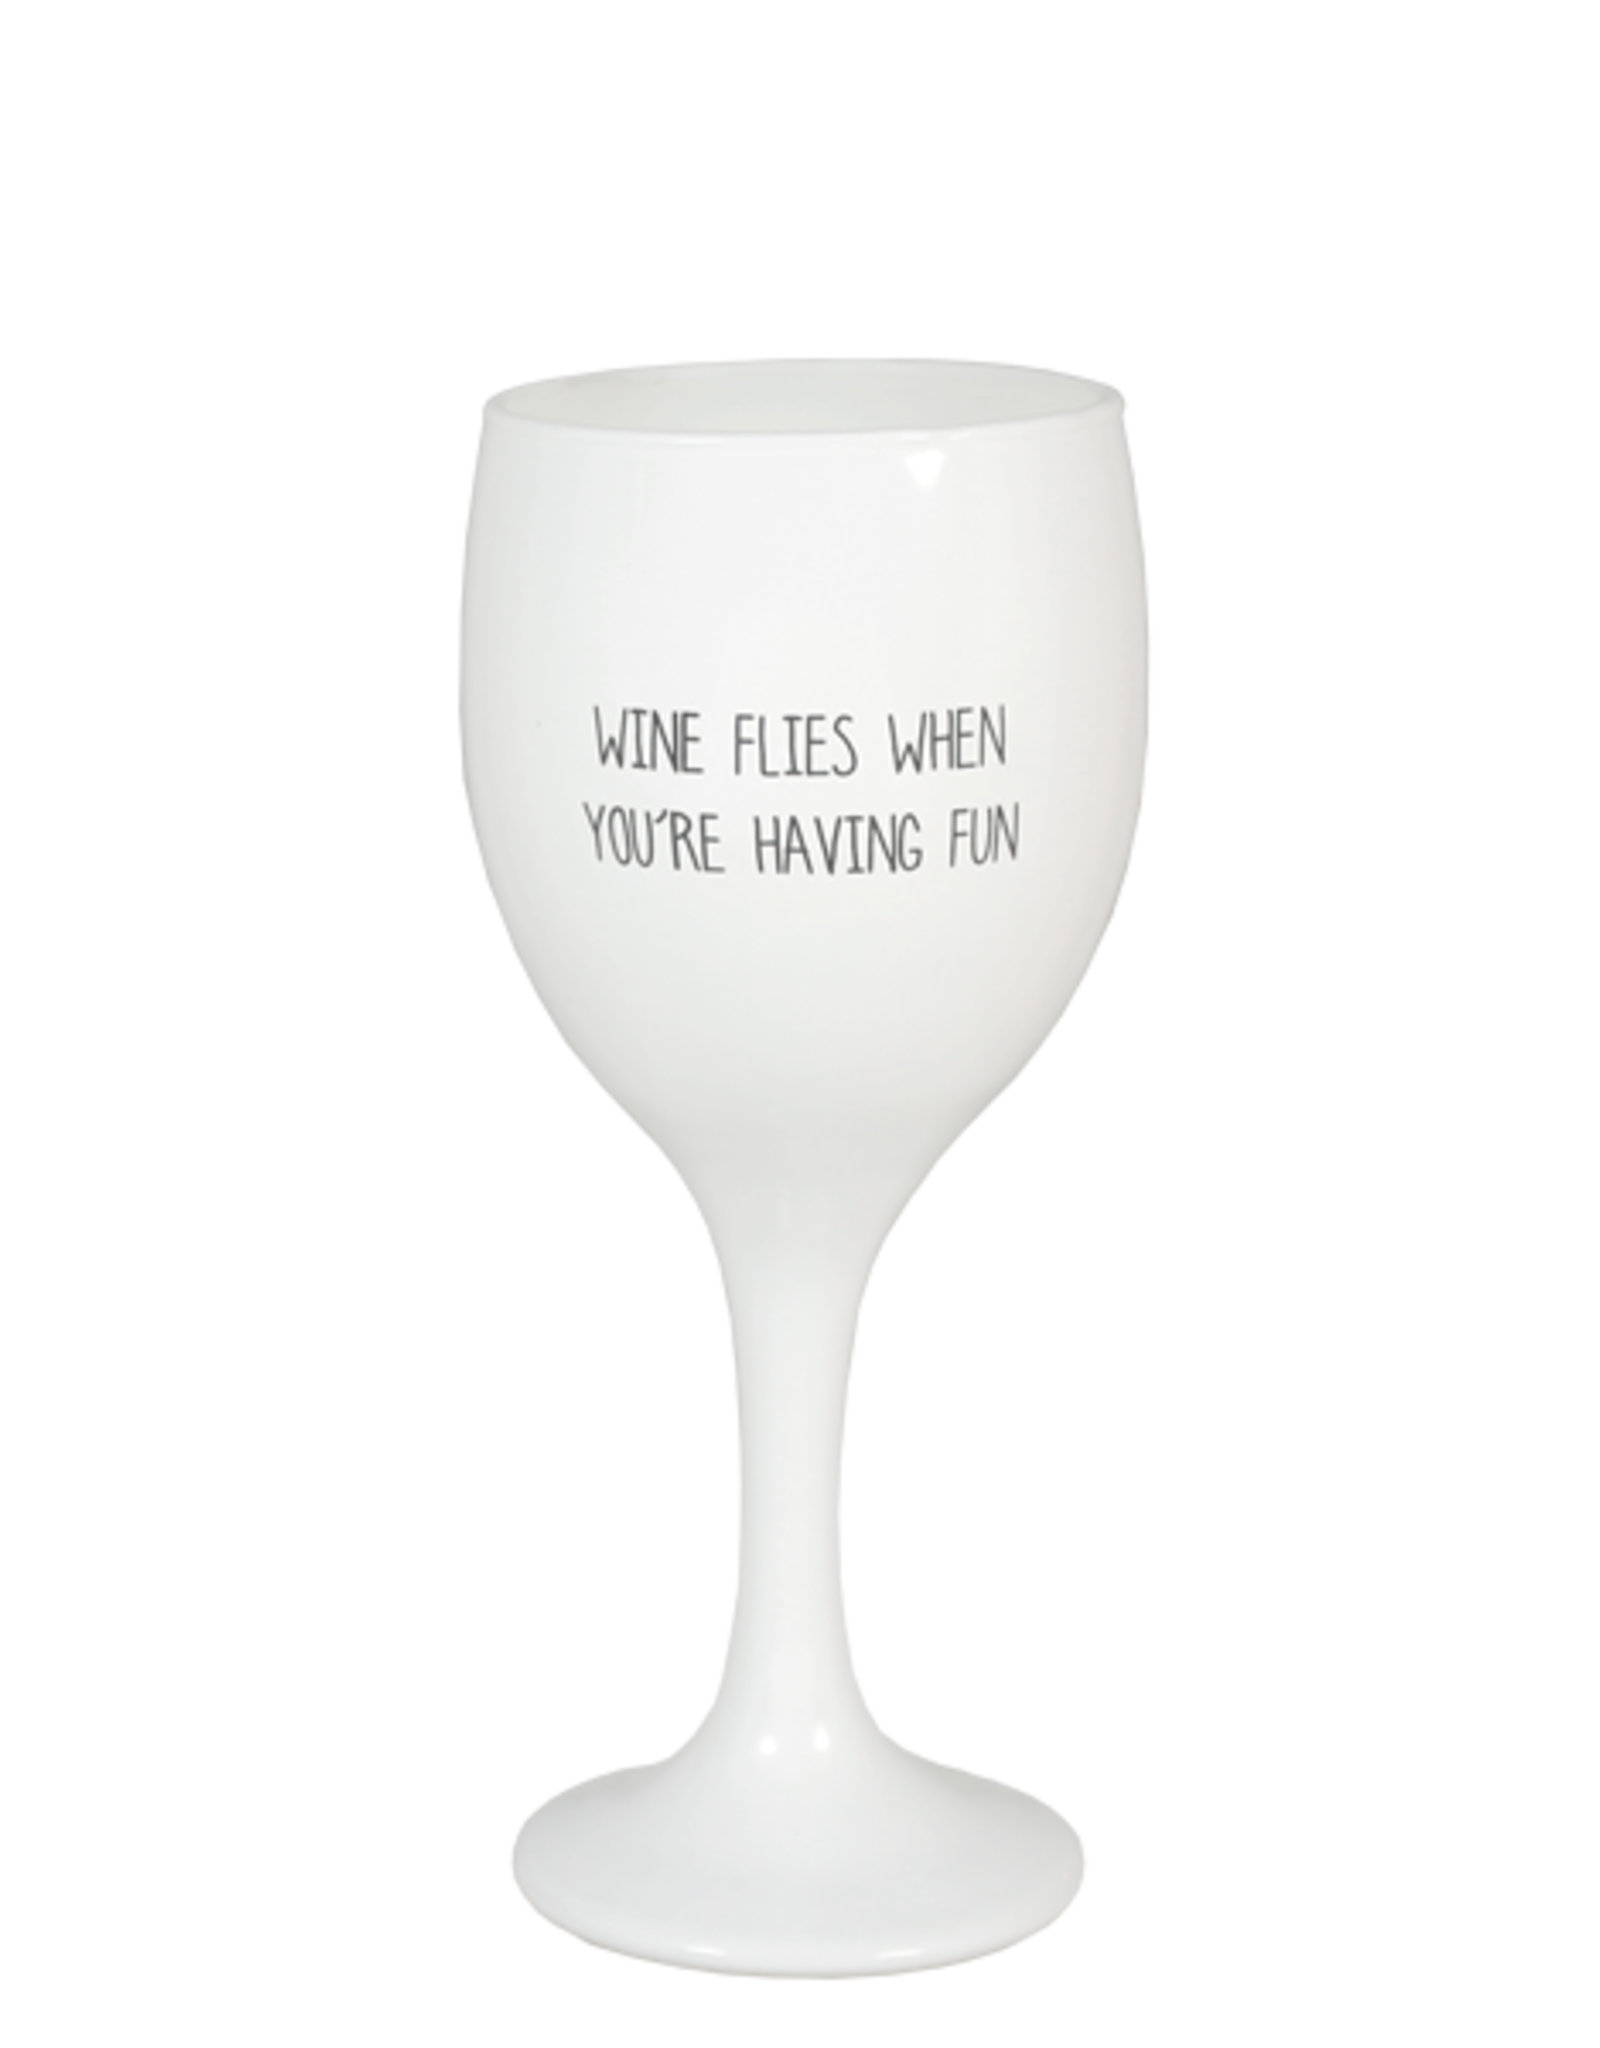 My flame Lifestyle SOJAKAARS | WINE FLIES WHEN YOU'RE HAVING FUN | FRESH COTTON